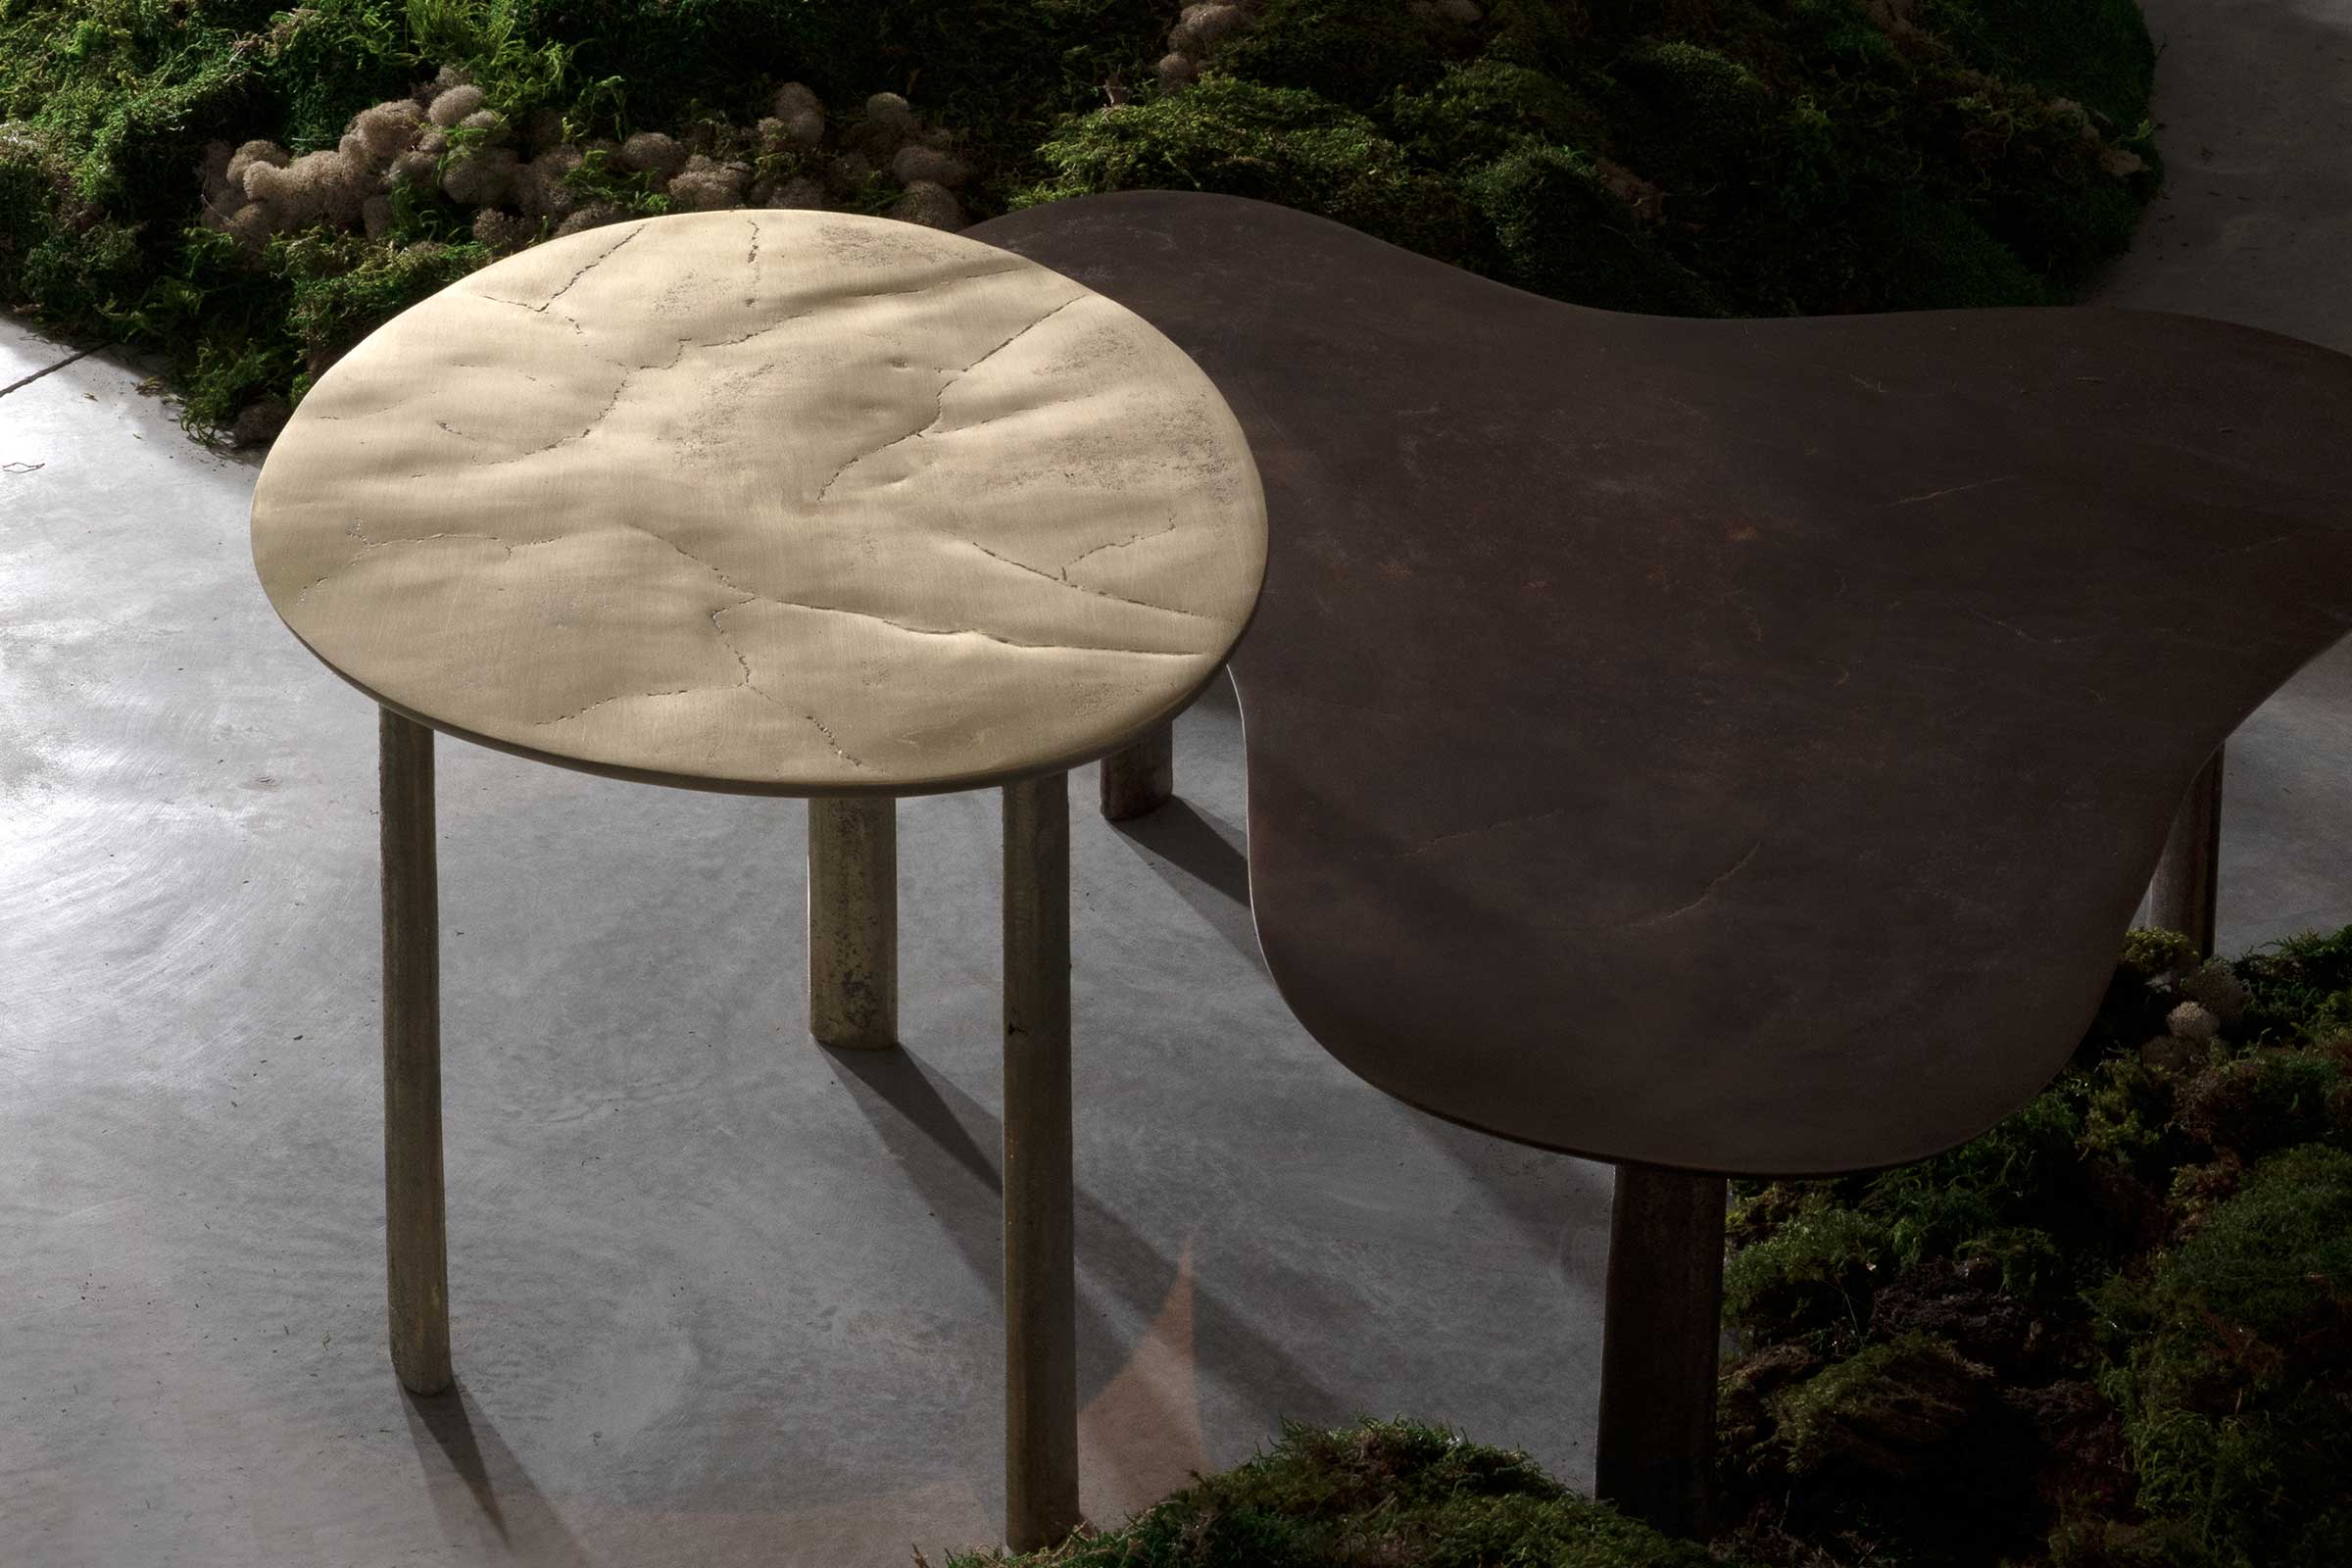 The Puddle coffee table is part of Yabu Pushelberg's second collection with Italian furniture brand Henge